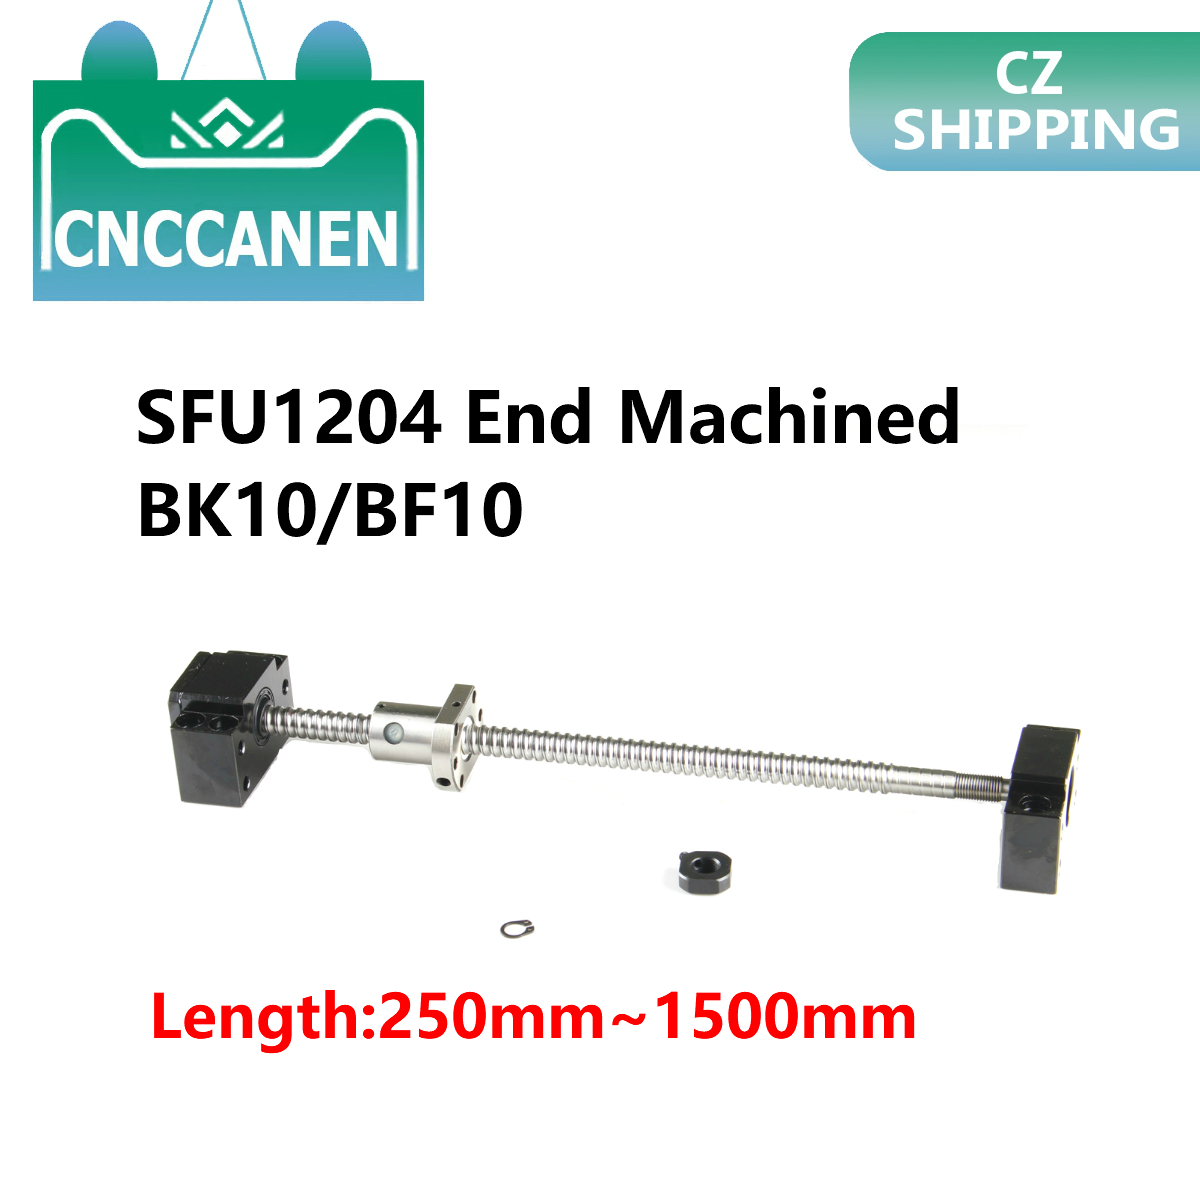 SFU1204-250mm 300 350 400 500 550 600 800 1000 1500 Mm Roller Ball Screw End Machined With Single Ball Nut & BK10/BF10 CNC